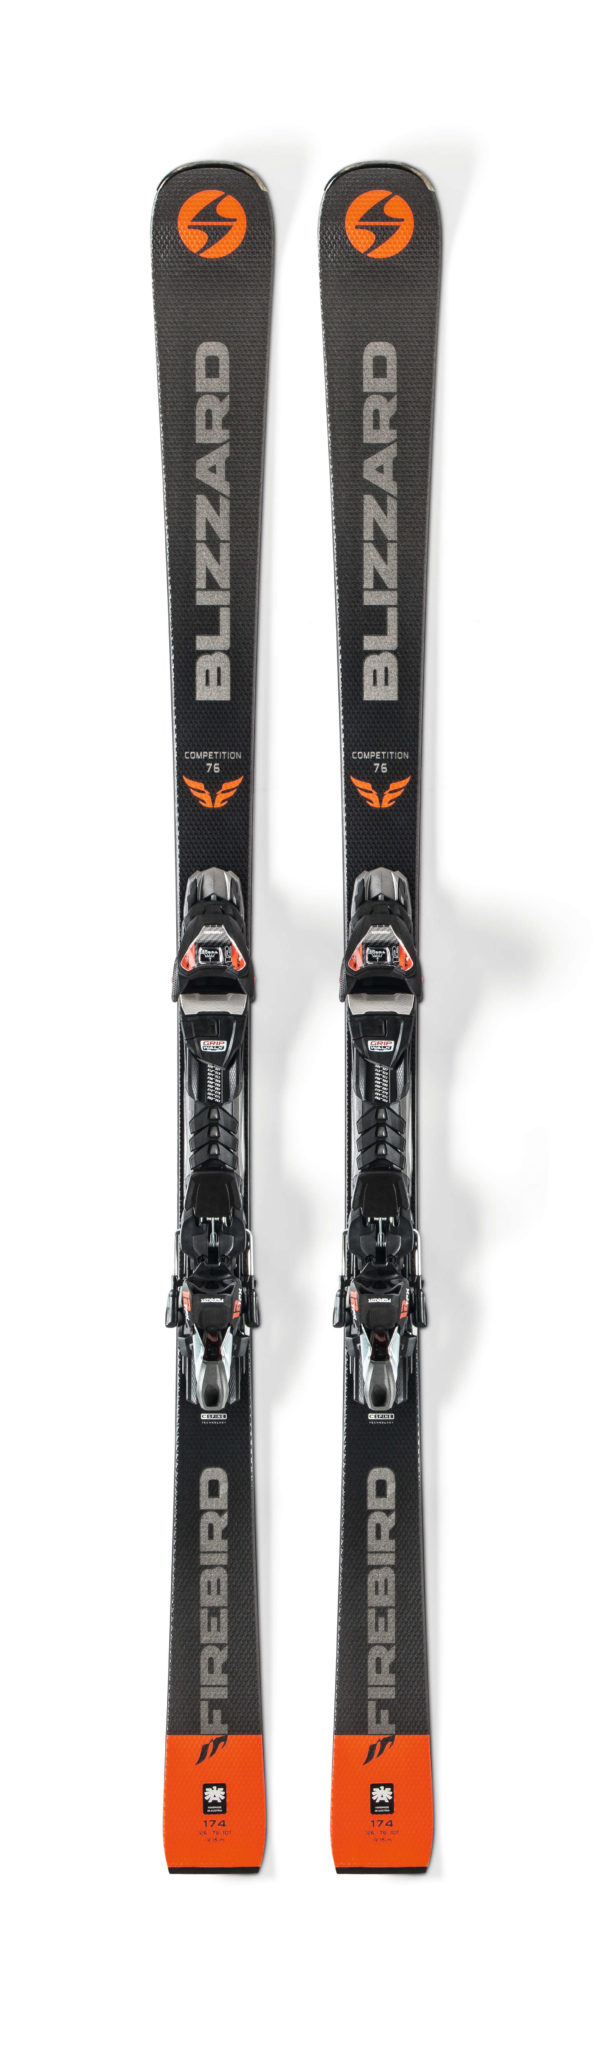 Blizzard Firebird Competition 76 Skis with TPX12 Bindings 2019-20 at Northern Ski Works